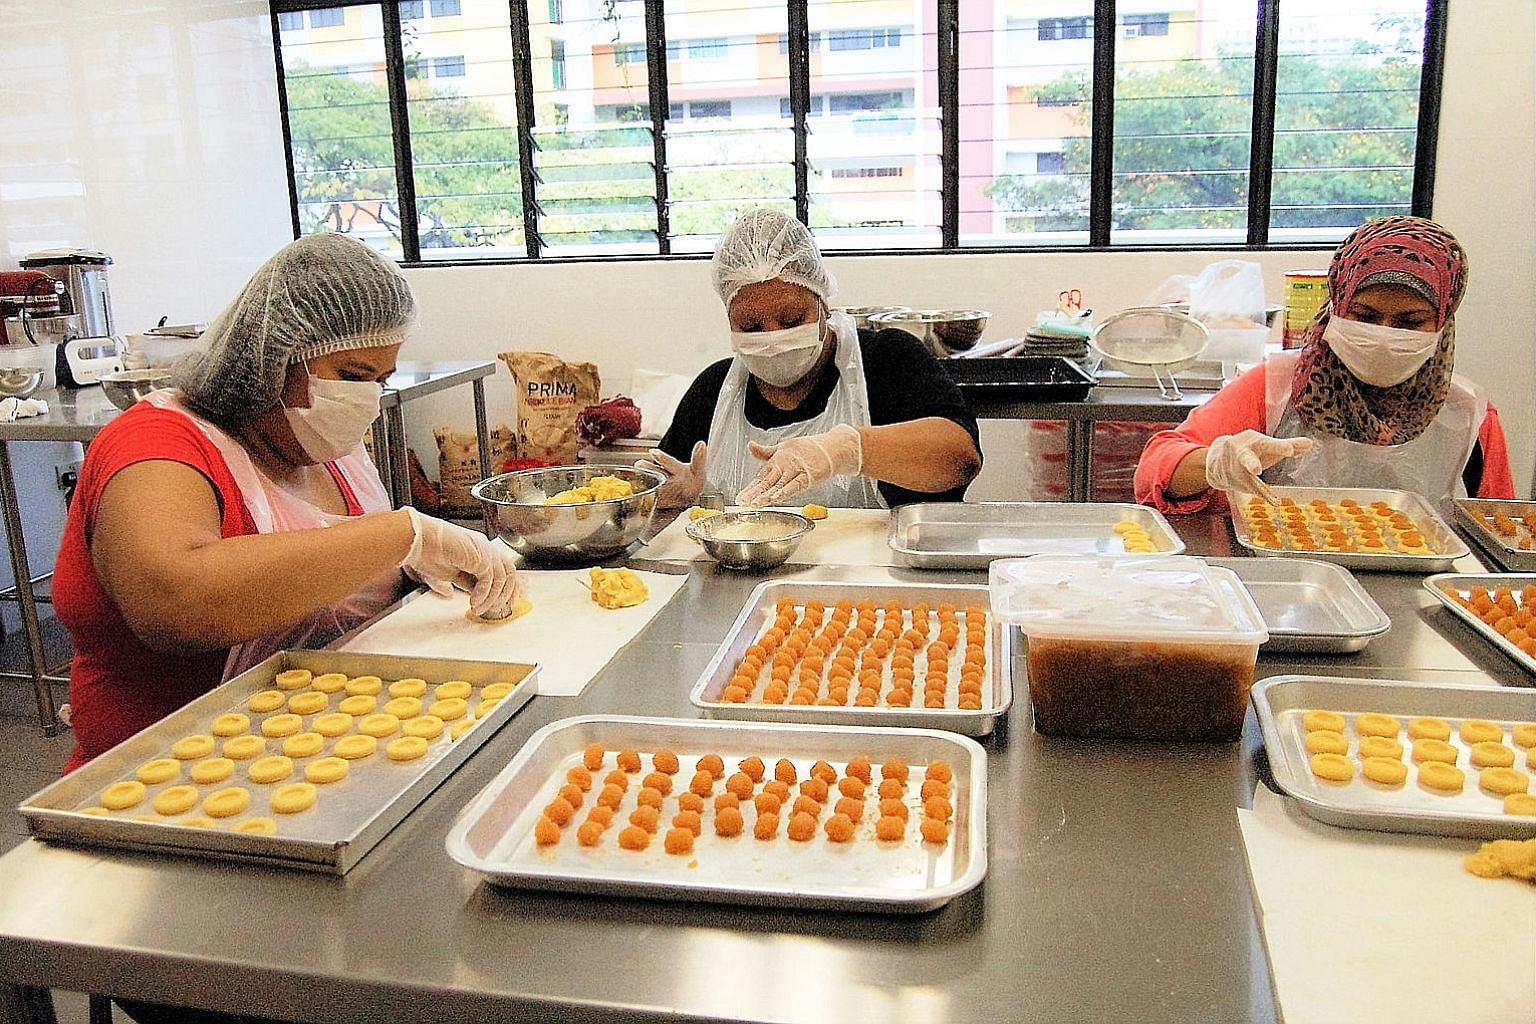 To help low-income families earn some income, Beyond Social Services, through its seasonal festive baking projects, secures orders from corporations for cookies as gifts during festive periods. To handle the large orders, it cooperates with Caritas S